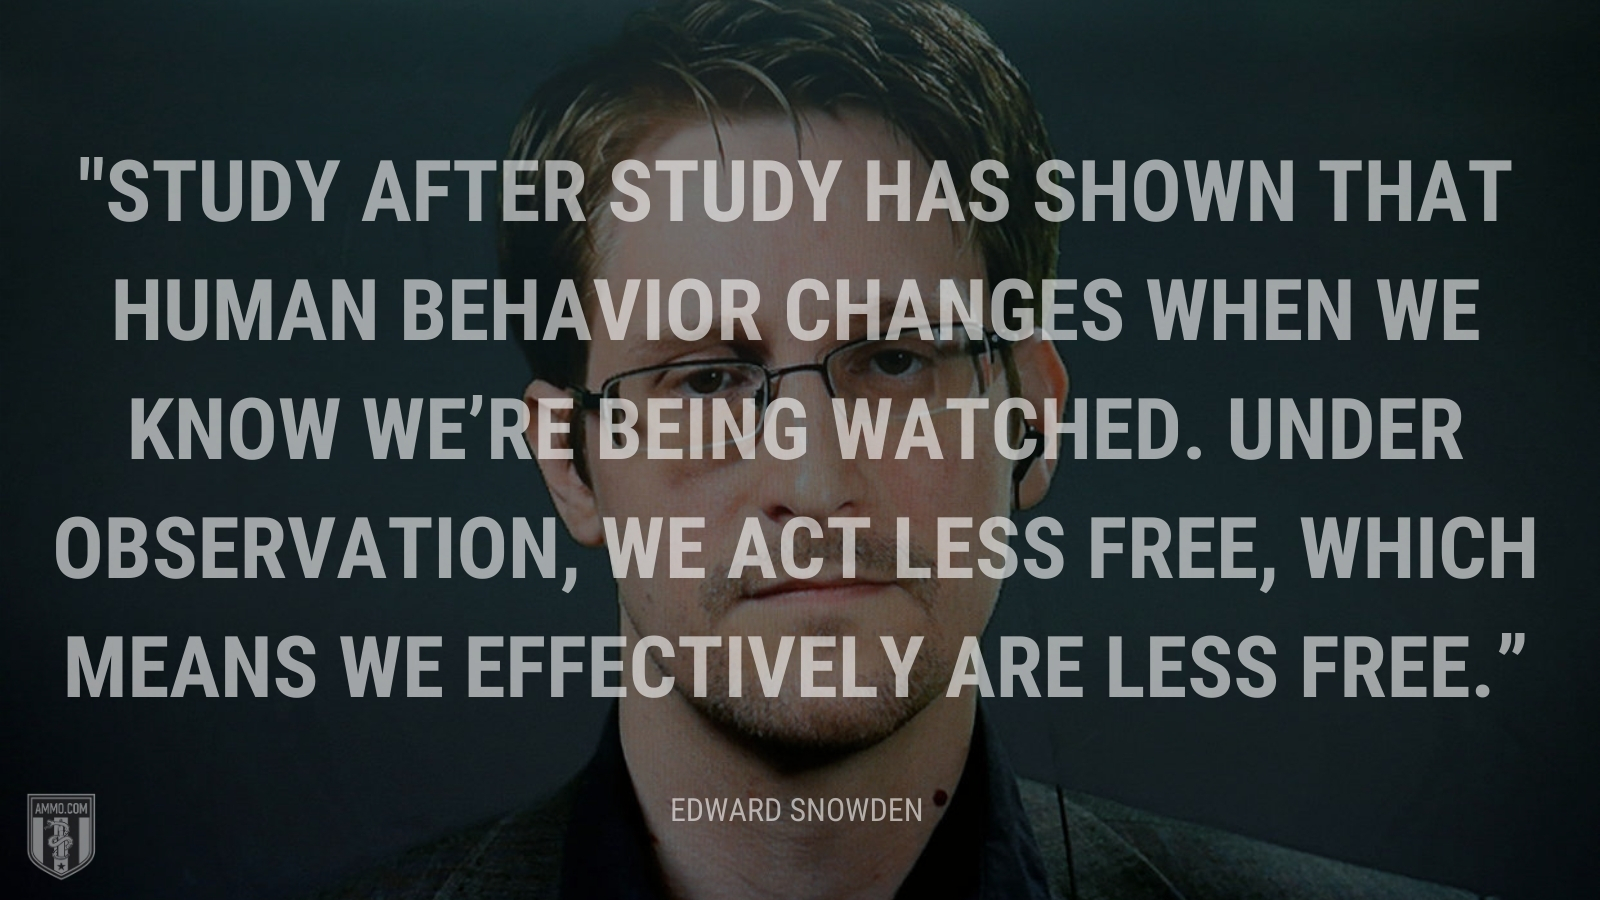 """""""Study after study has shown that human behavior changes when we know we're being watched. Under observation, we act less free, which means we effectively are less free."""" - Edward Snowden"""